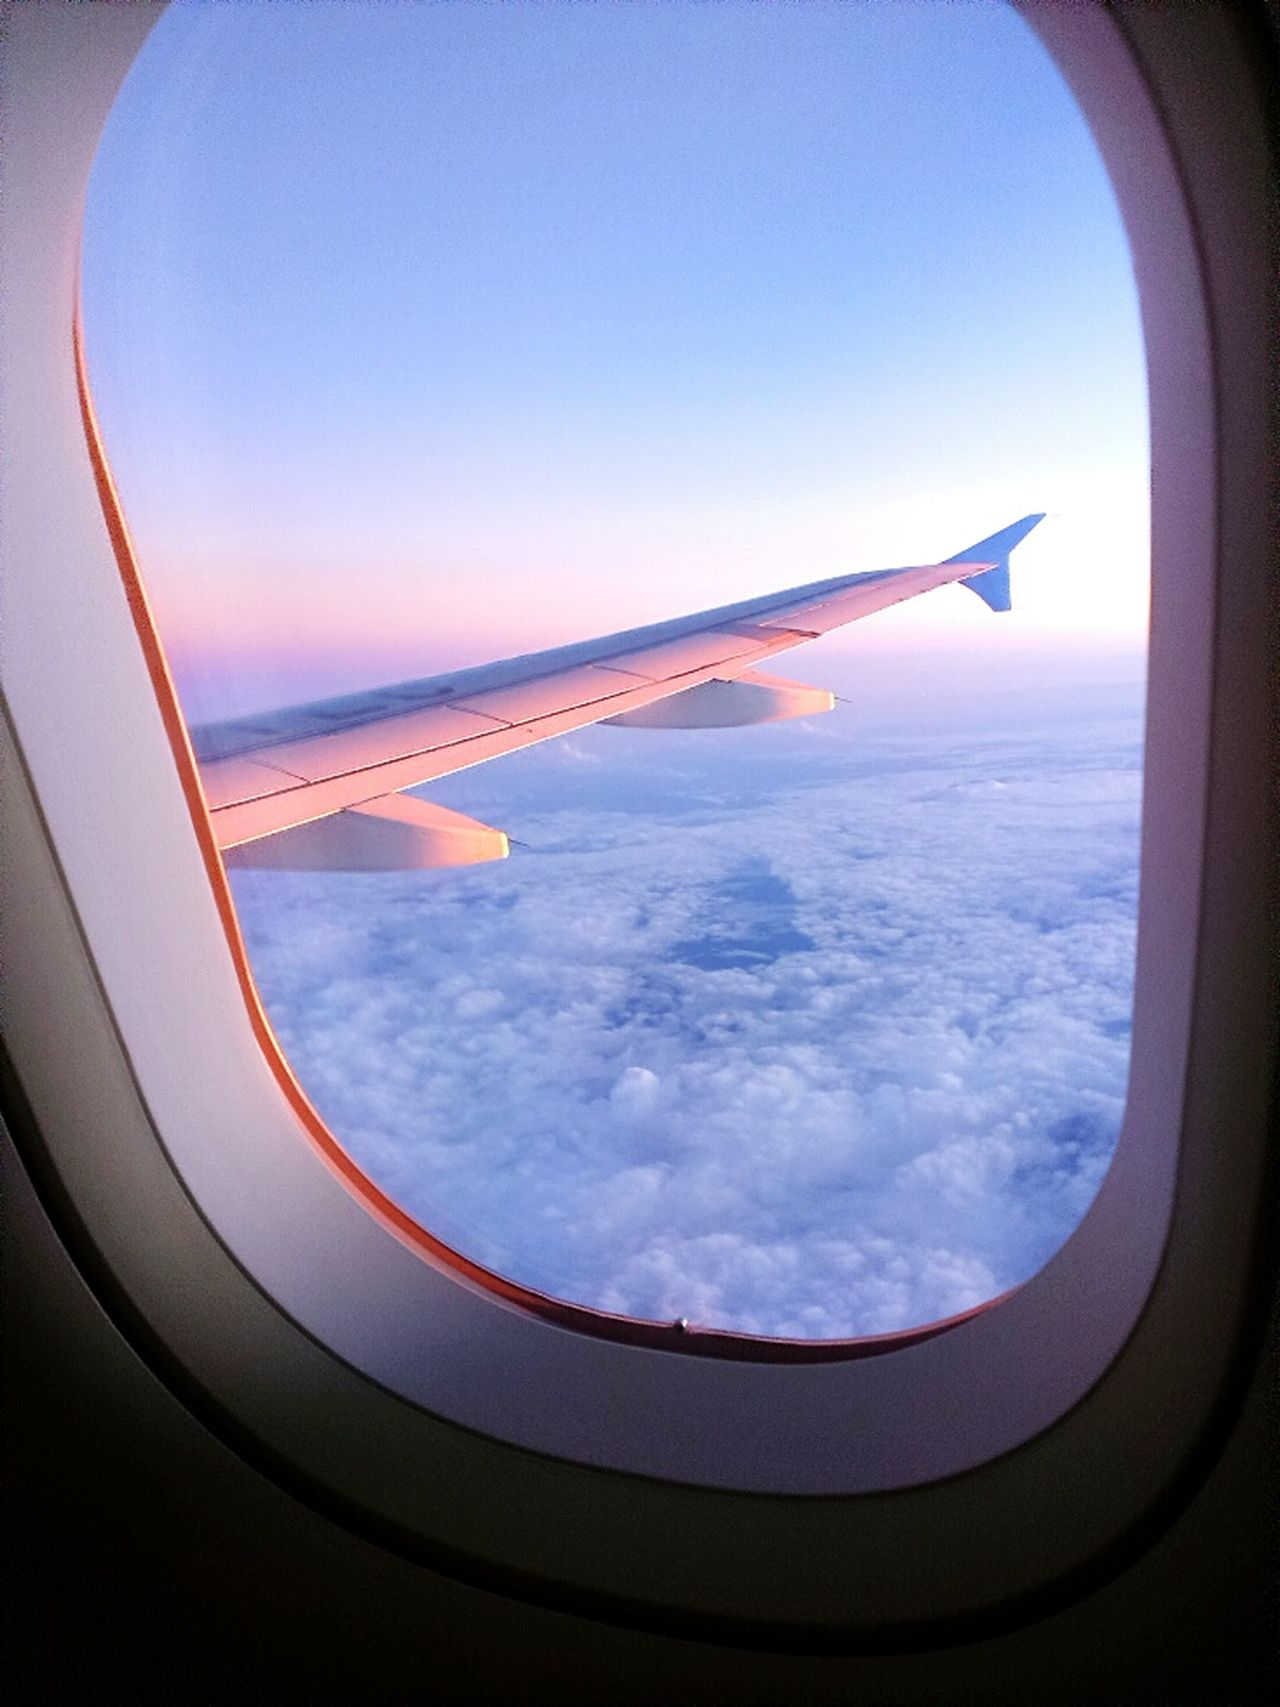 A320 Clouds And Sky Clouds Airplane Flying Sky Cloud - Sky Aerial View Aircraft Wing Beauty In Nature No People Business Finance And Industry Airplane Wing Outdoors Day Cloudscape Travel Transportation Commercial Airplane Journey Plane Sunlight Tranquility Mobile Photography